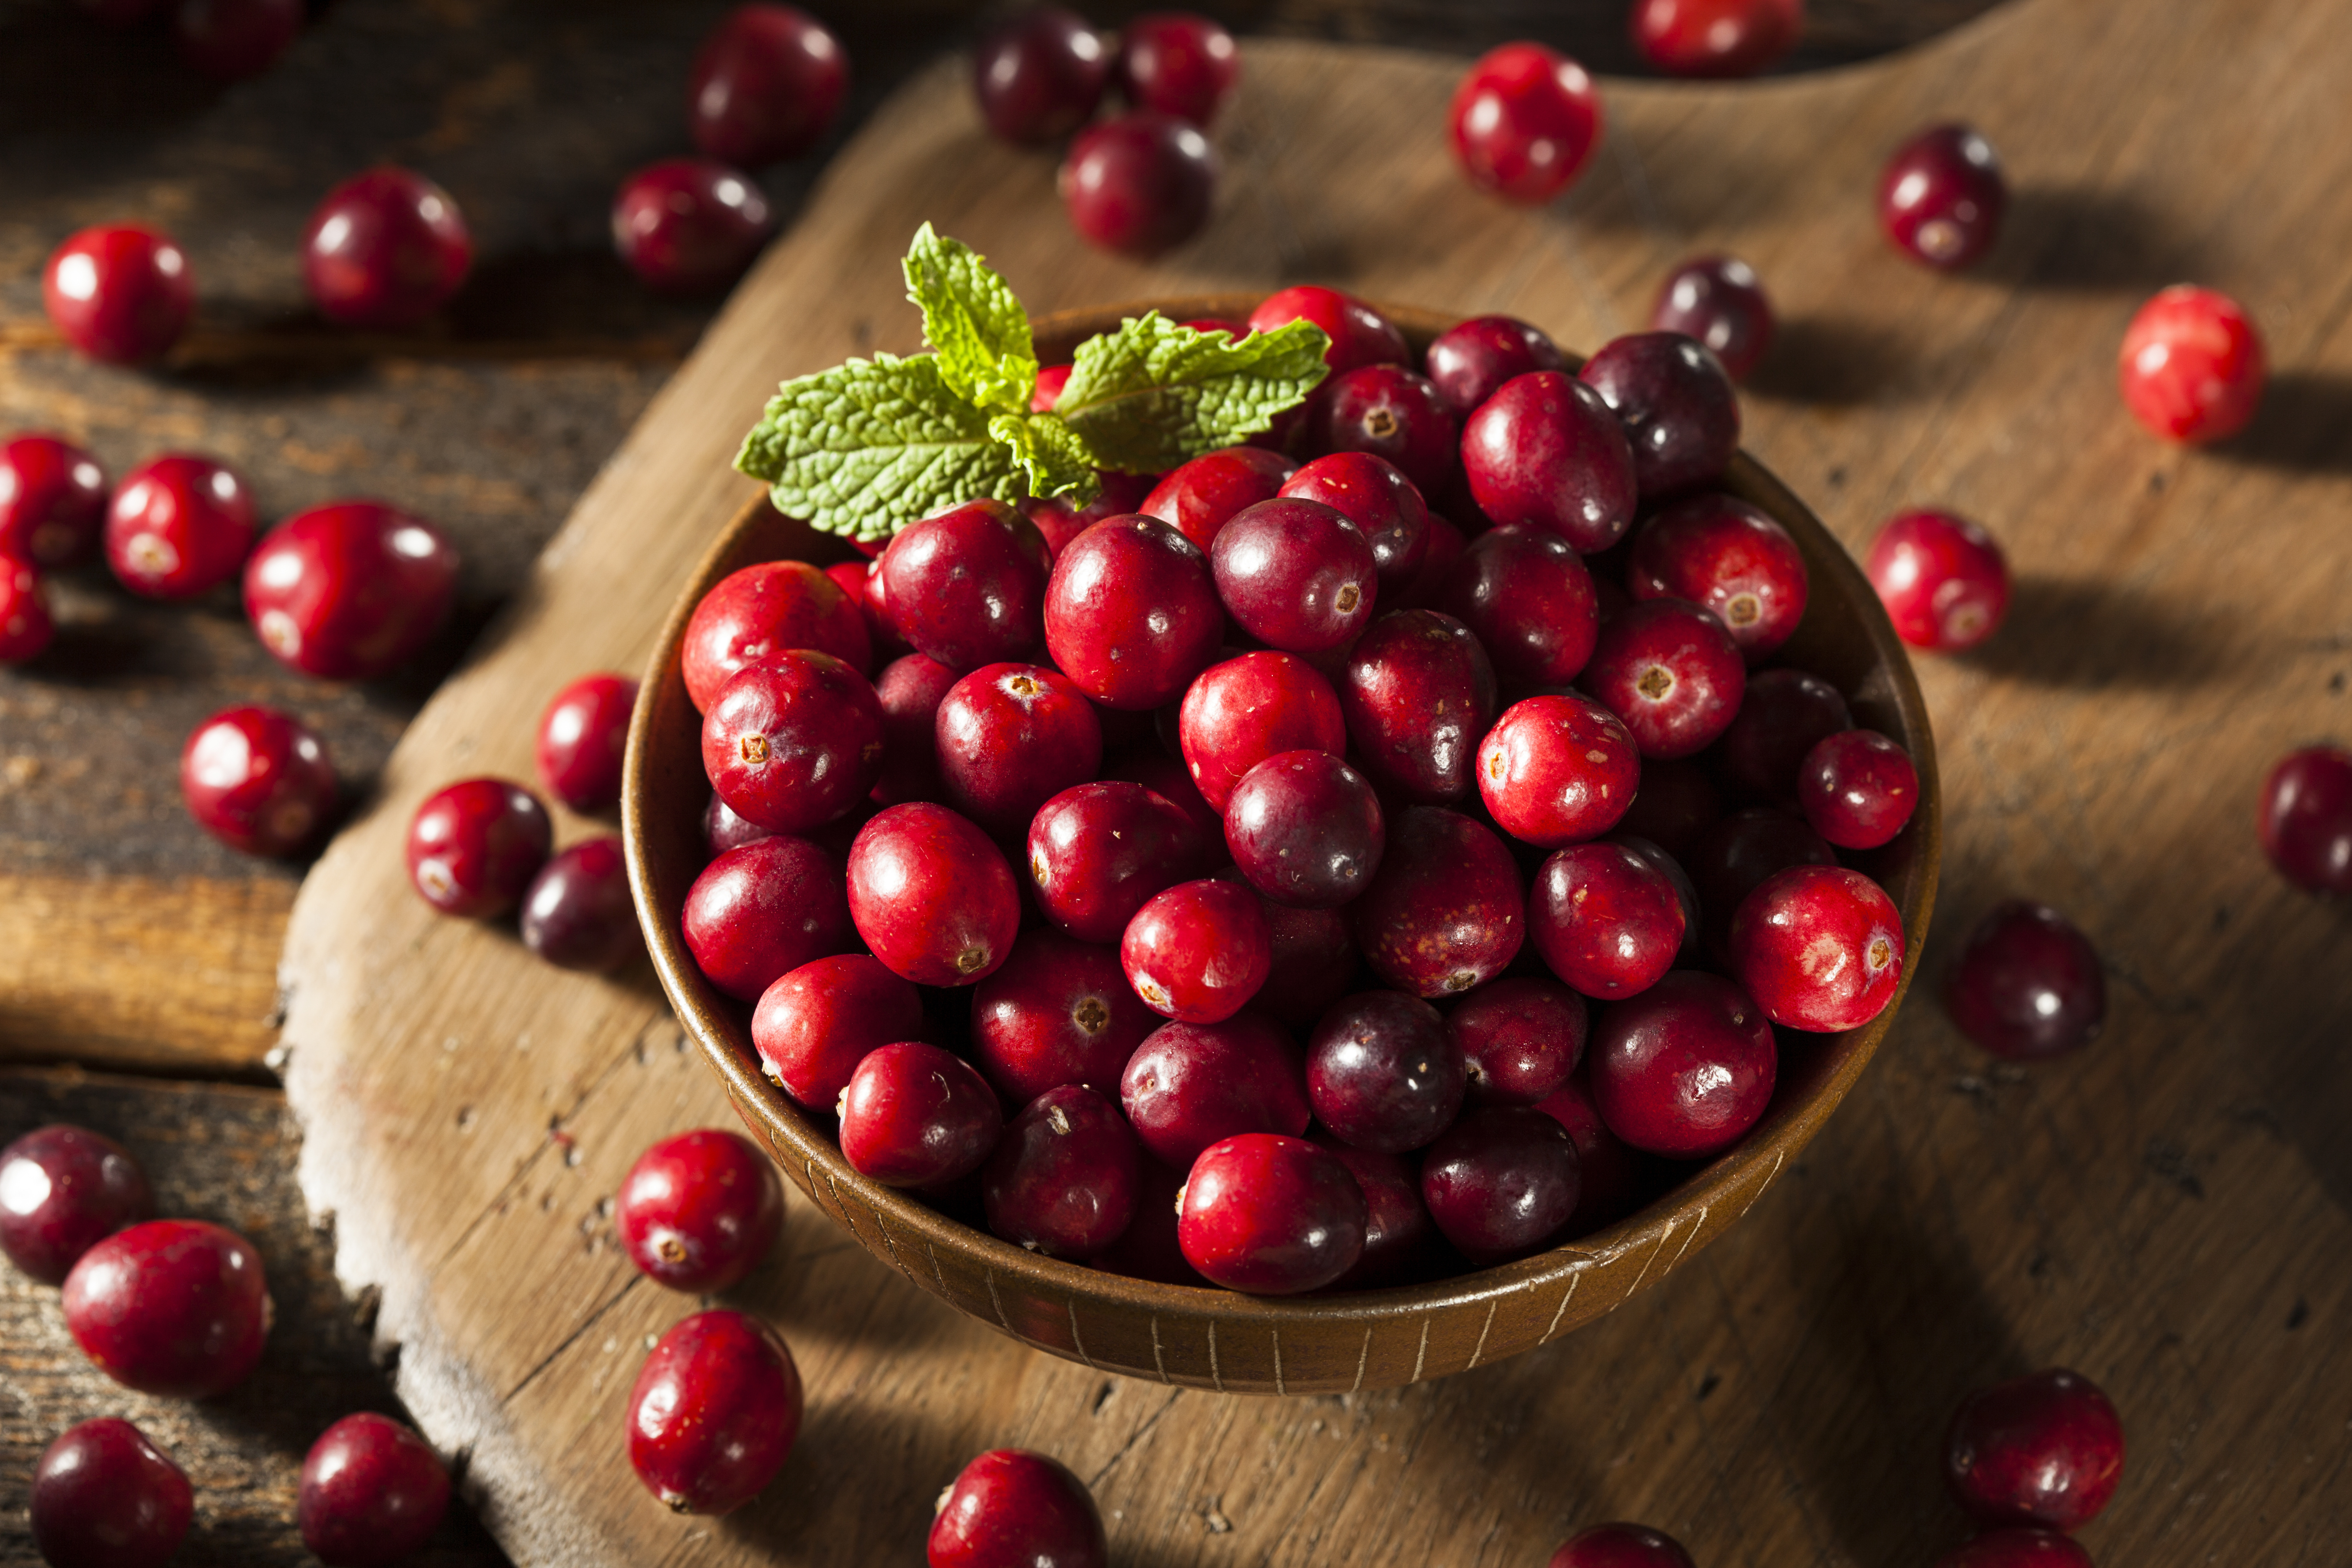 Cranberries get their crimson color from anthocyanins, one of many plant compounds beneficial to health.